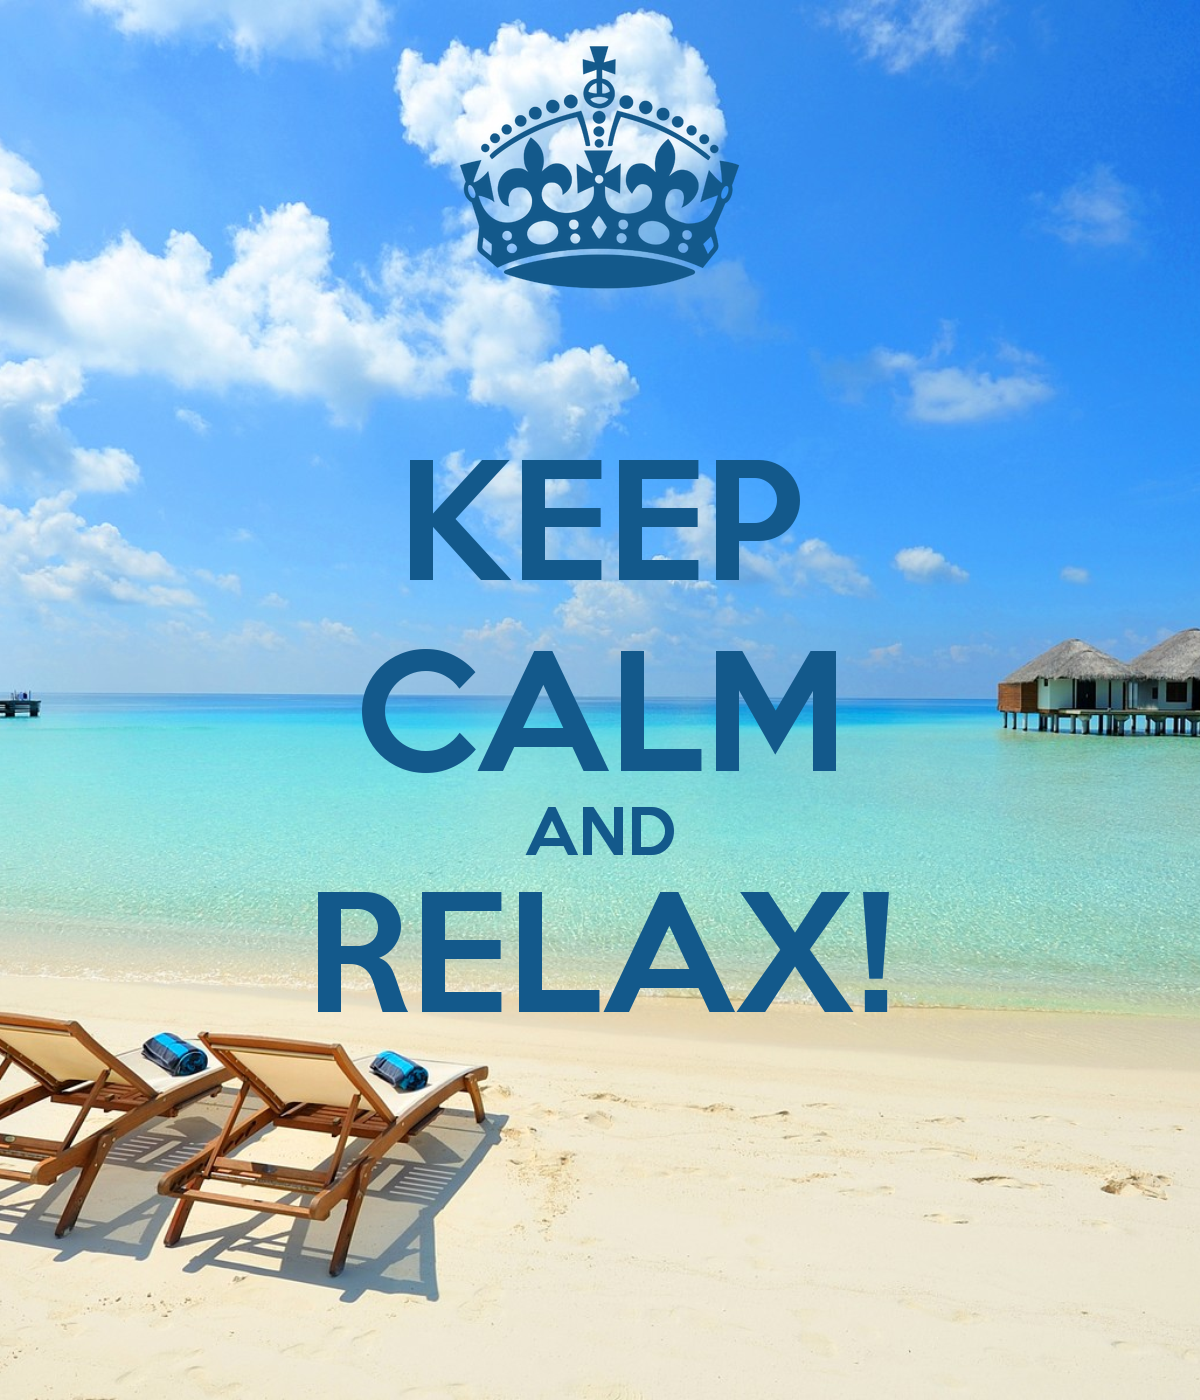 KEEP CALM AND RELAX! | Just me... | Pinterest | Calming ...